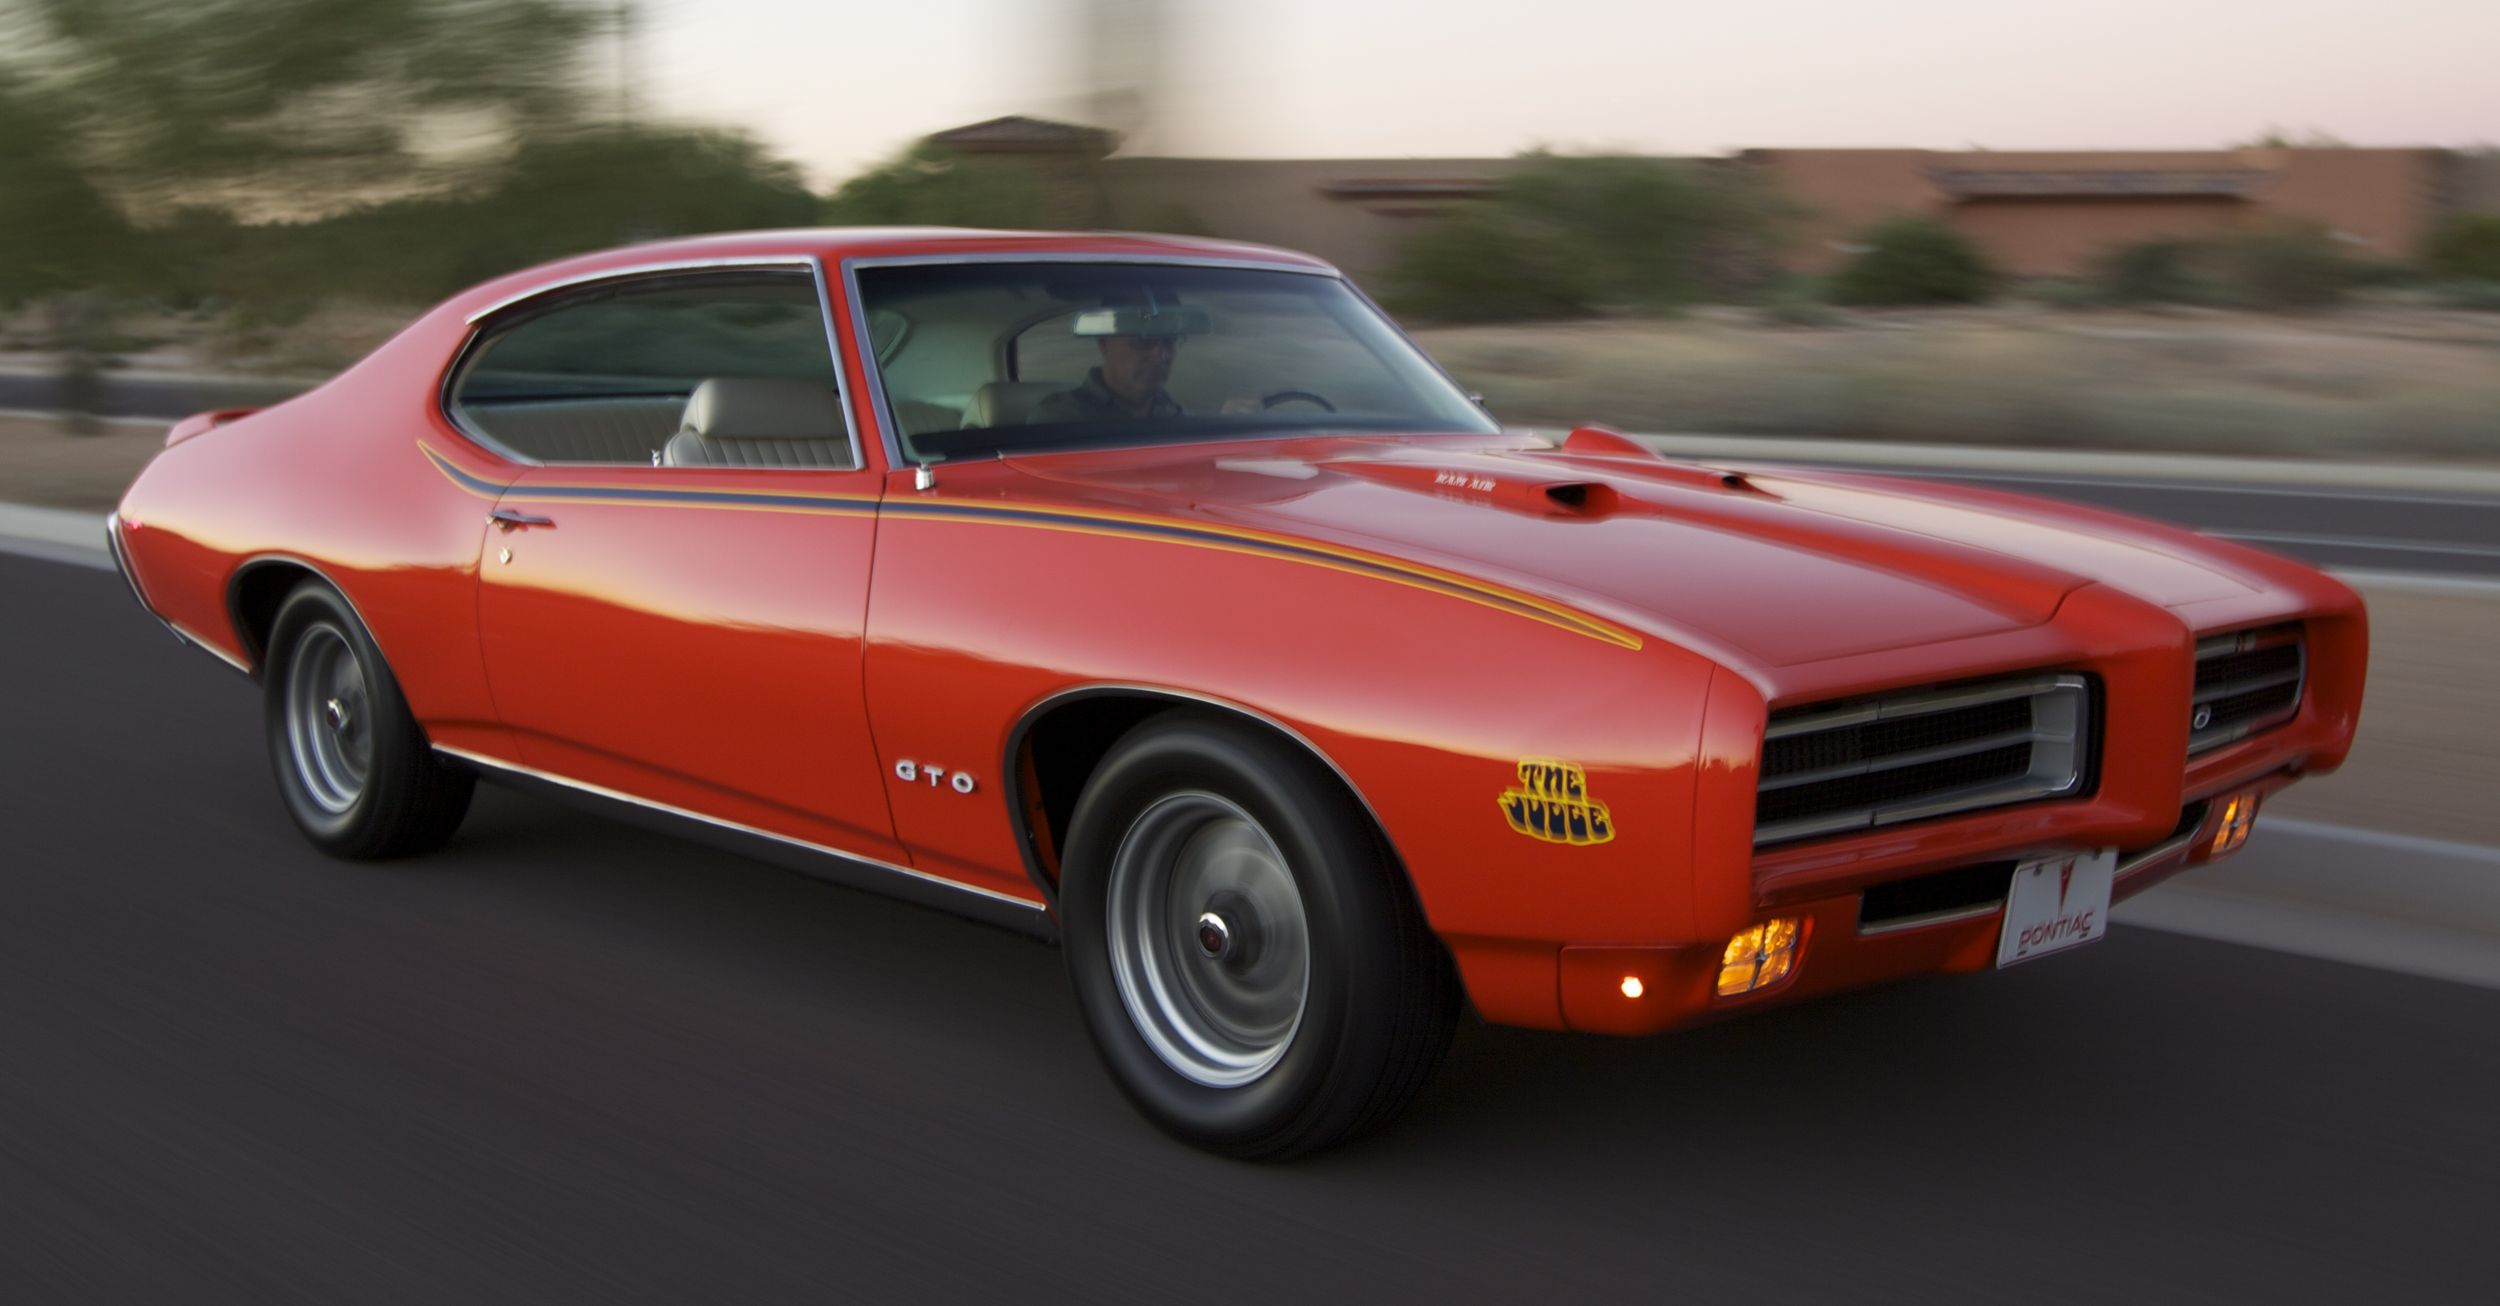 69 Gto One Of My Favorite Cars But I Ve Never Seen One